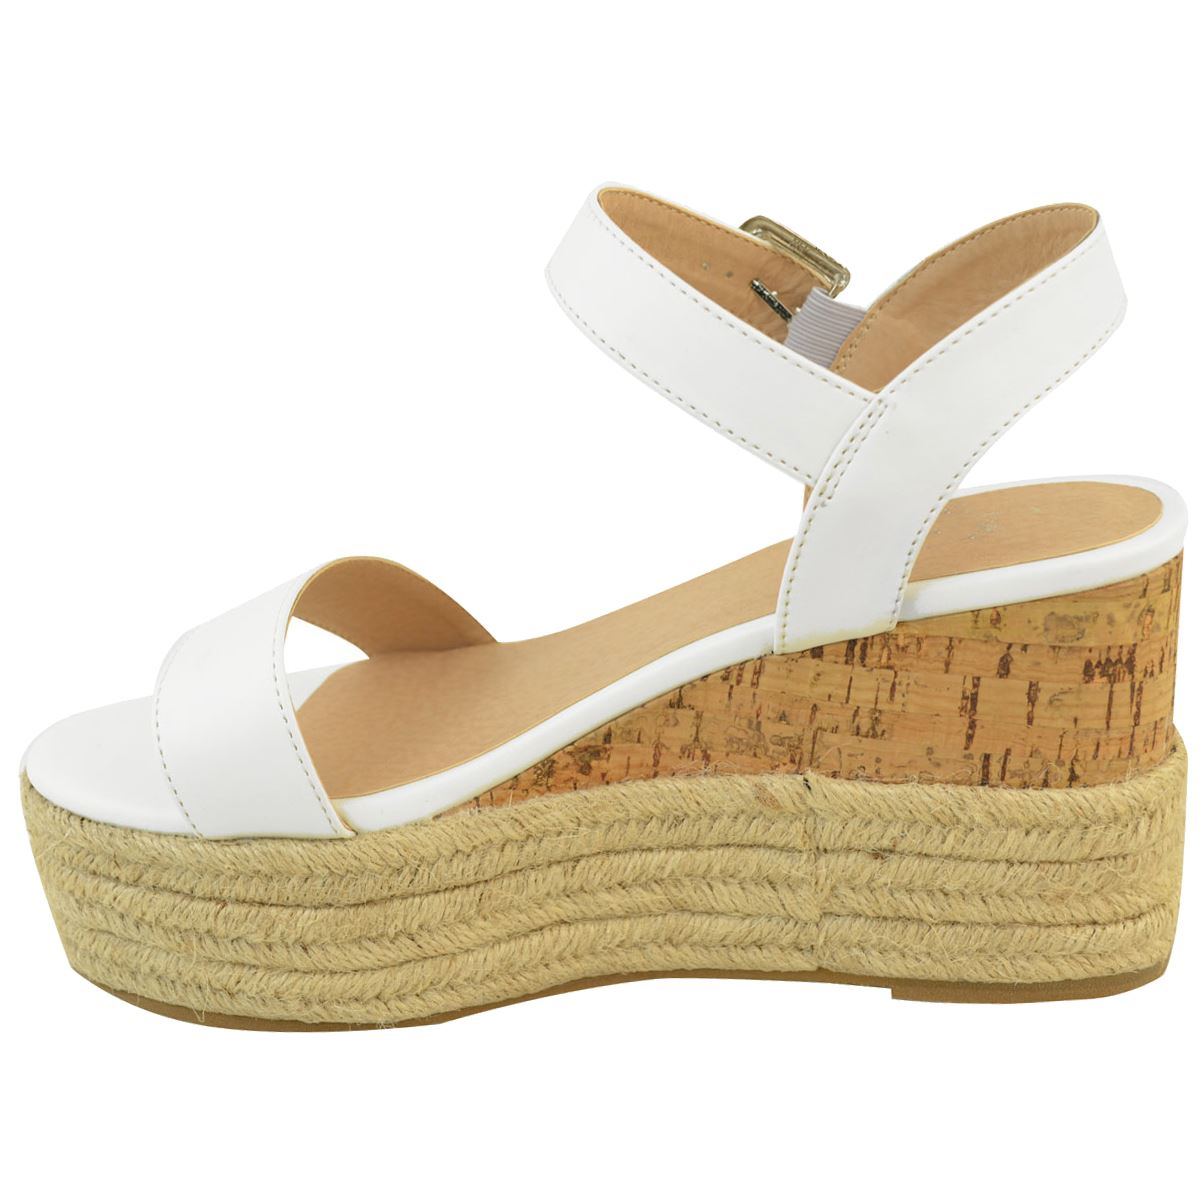 Womens-Ladies-Summer-Platform-Ankle-Strappy-Wedges-Open-Toe-Sandals-Shoes-Size thumbnail 10